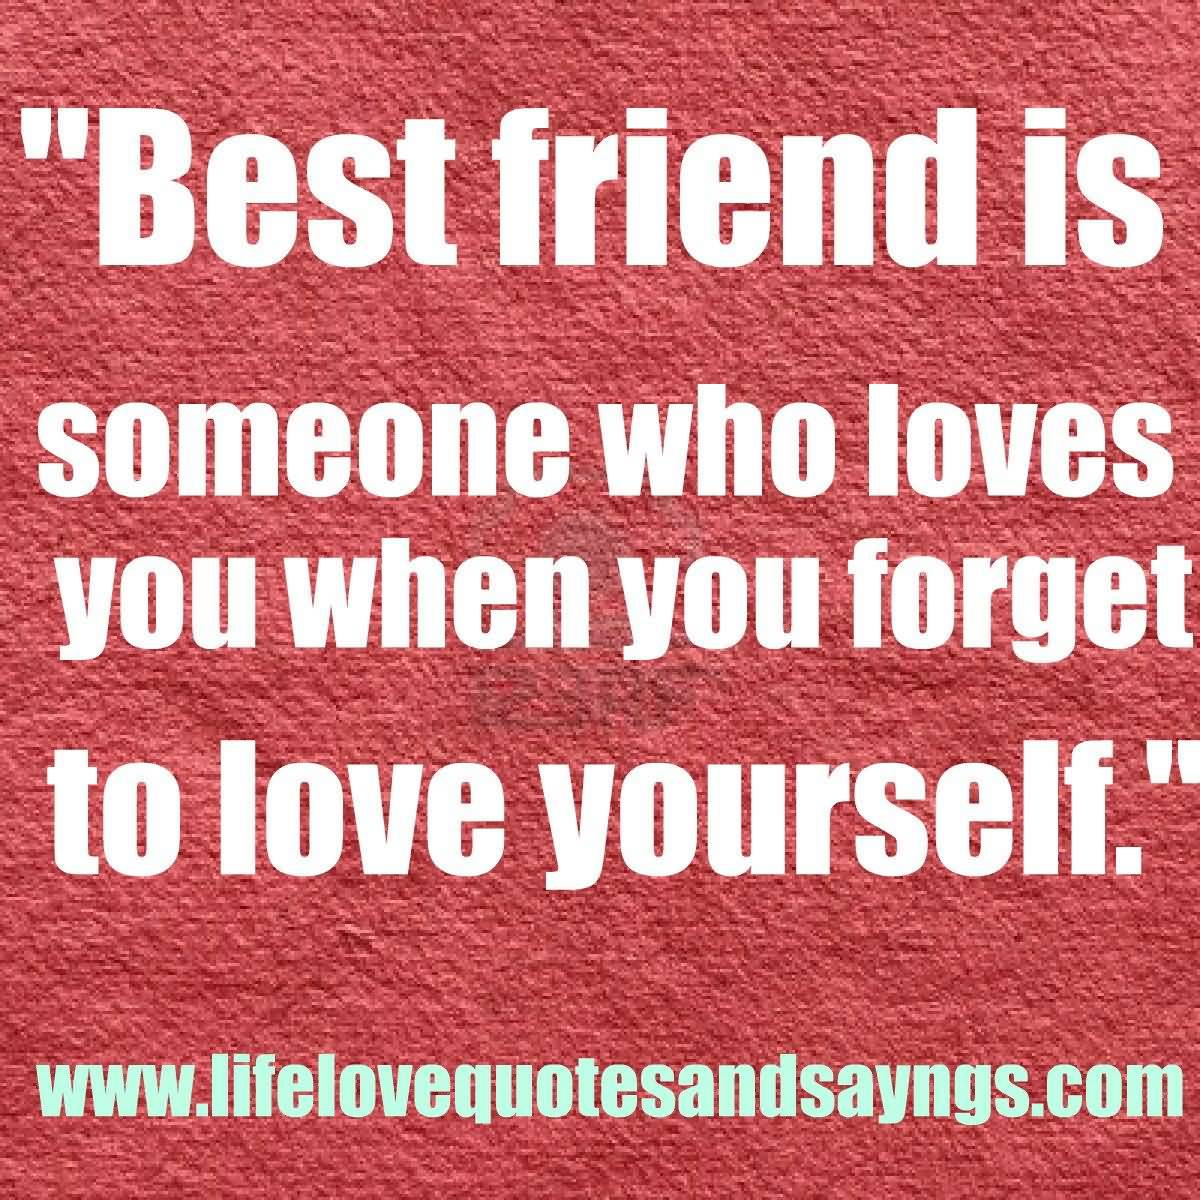 Quotes About Friendship And Love Best Quotes About Friendship And Love 04  Quotesbae